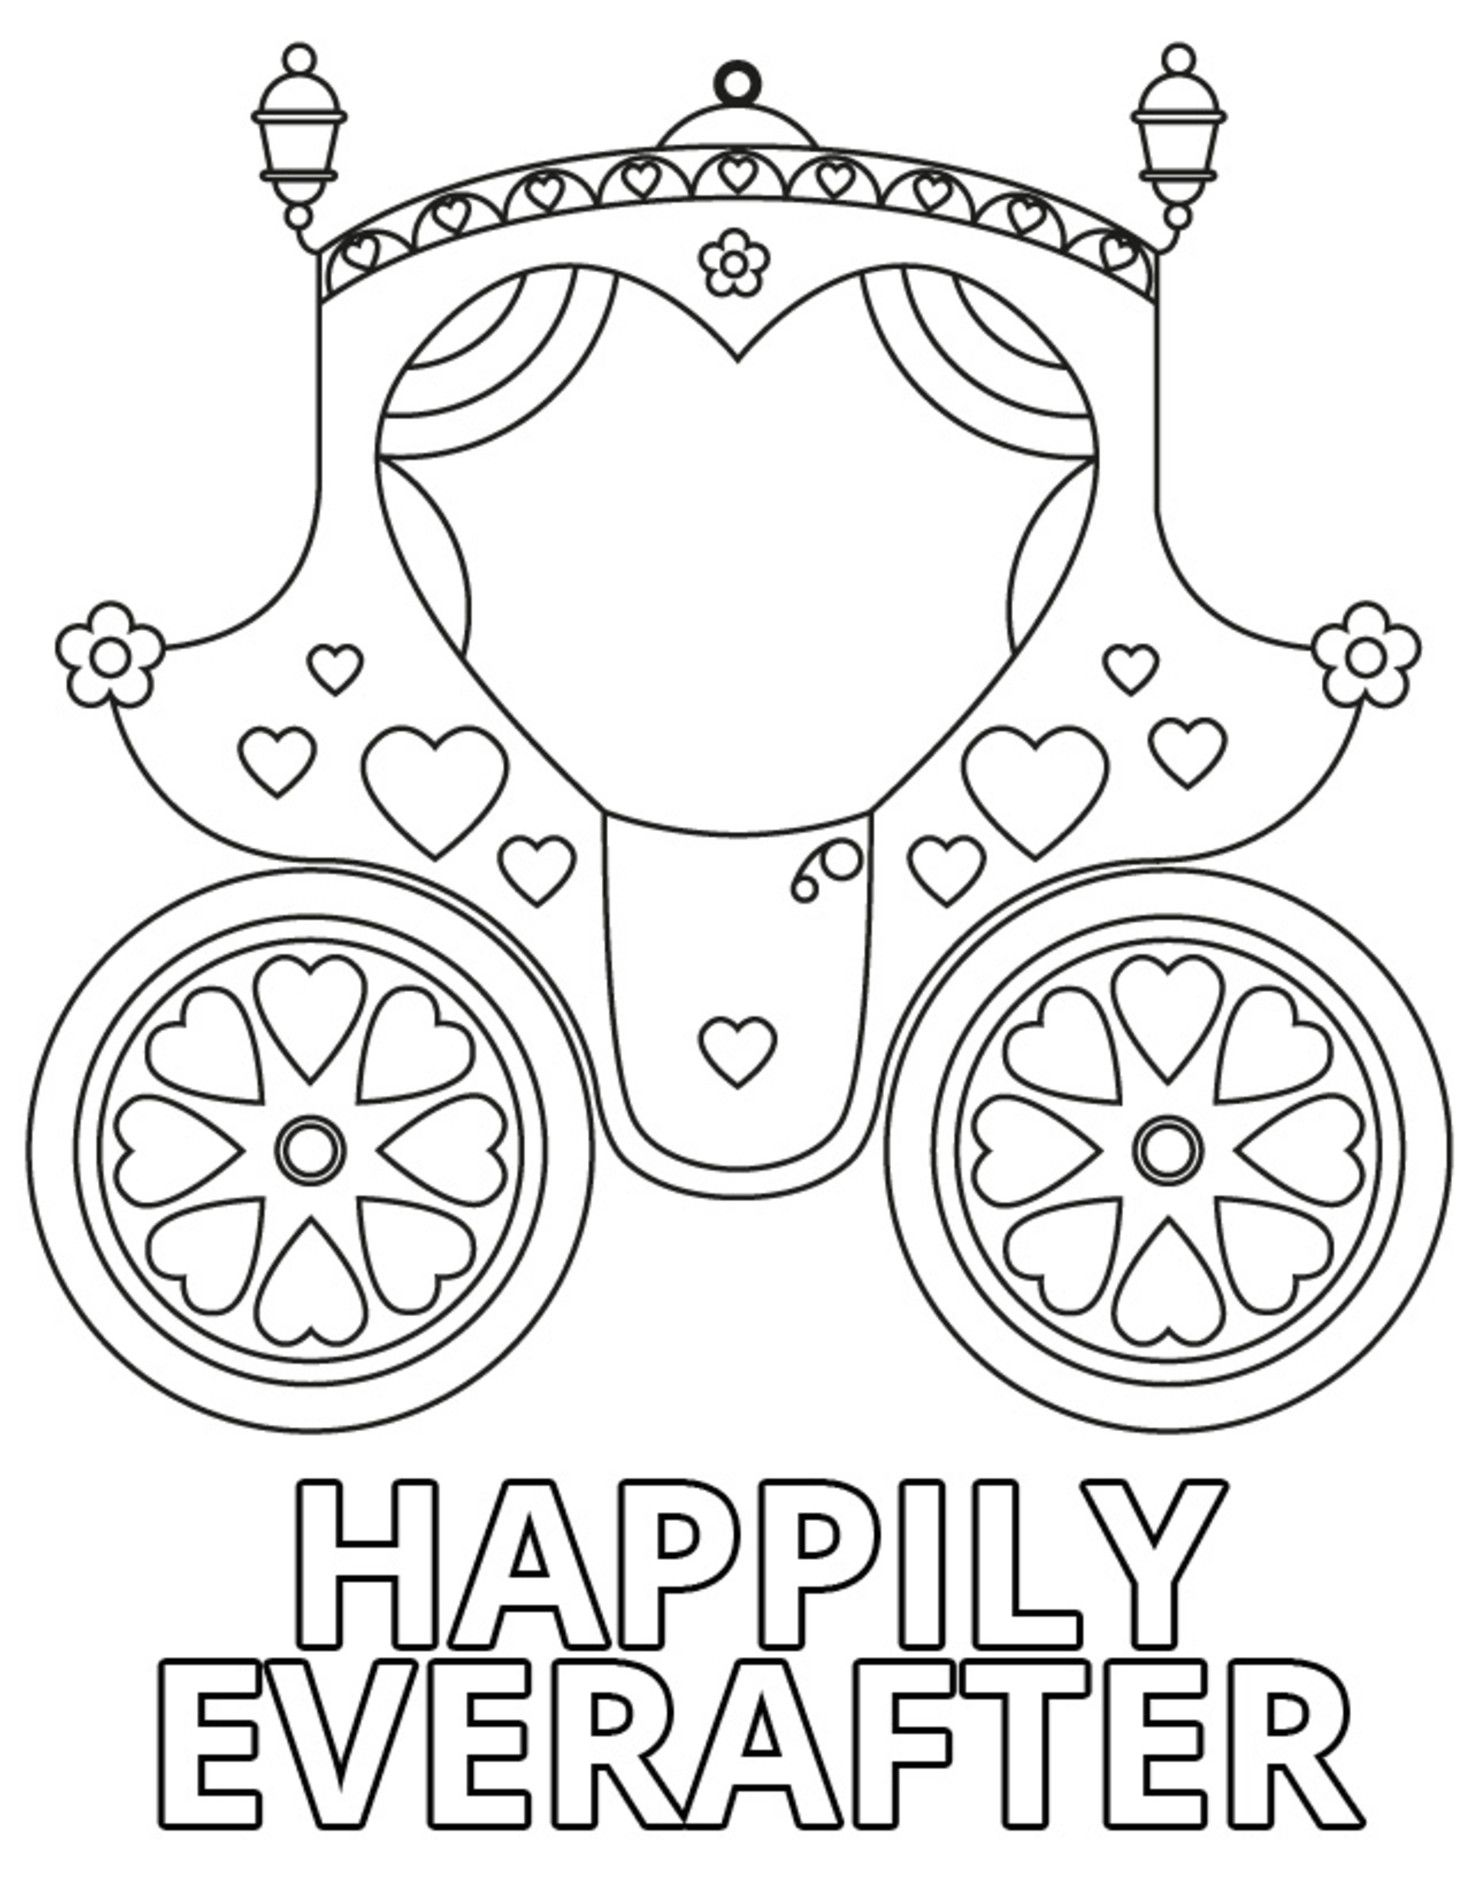 make these cute kids wedding favors free coloring pages kids coloring sheets kids wedding favors and weddings - Wedding Coloring Pages